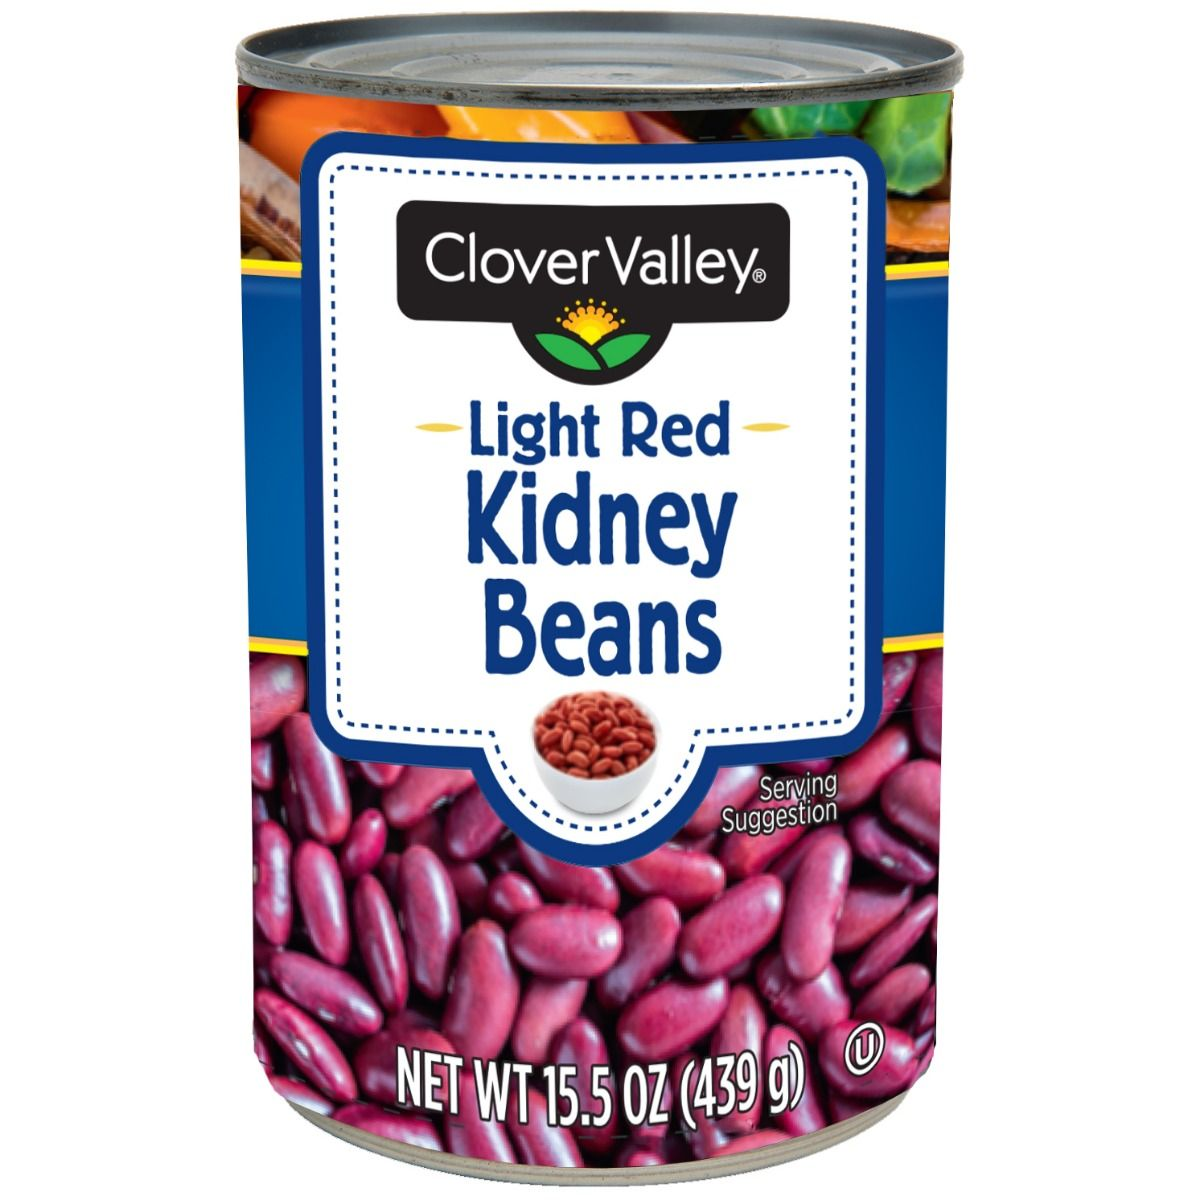 Clover Valley Light Red Kidney Beans, 15.5 Oz.